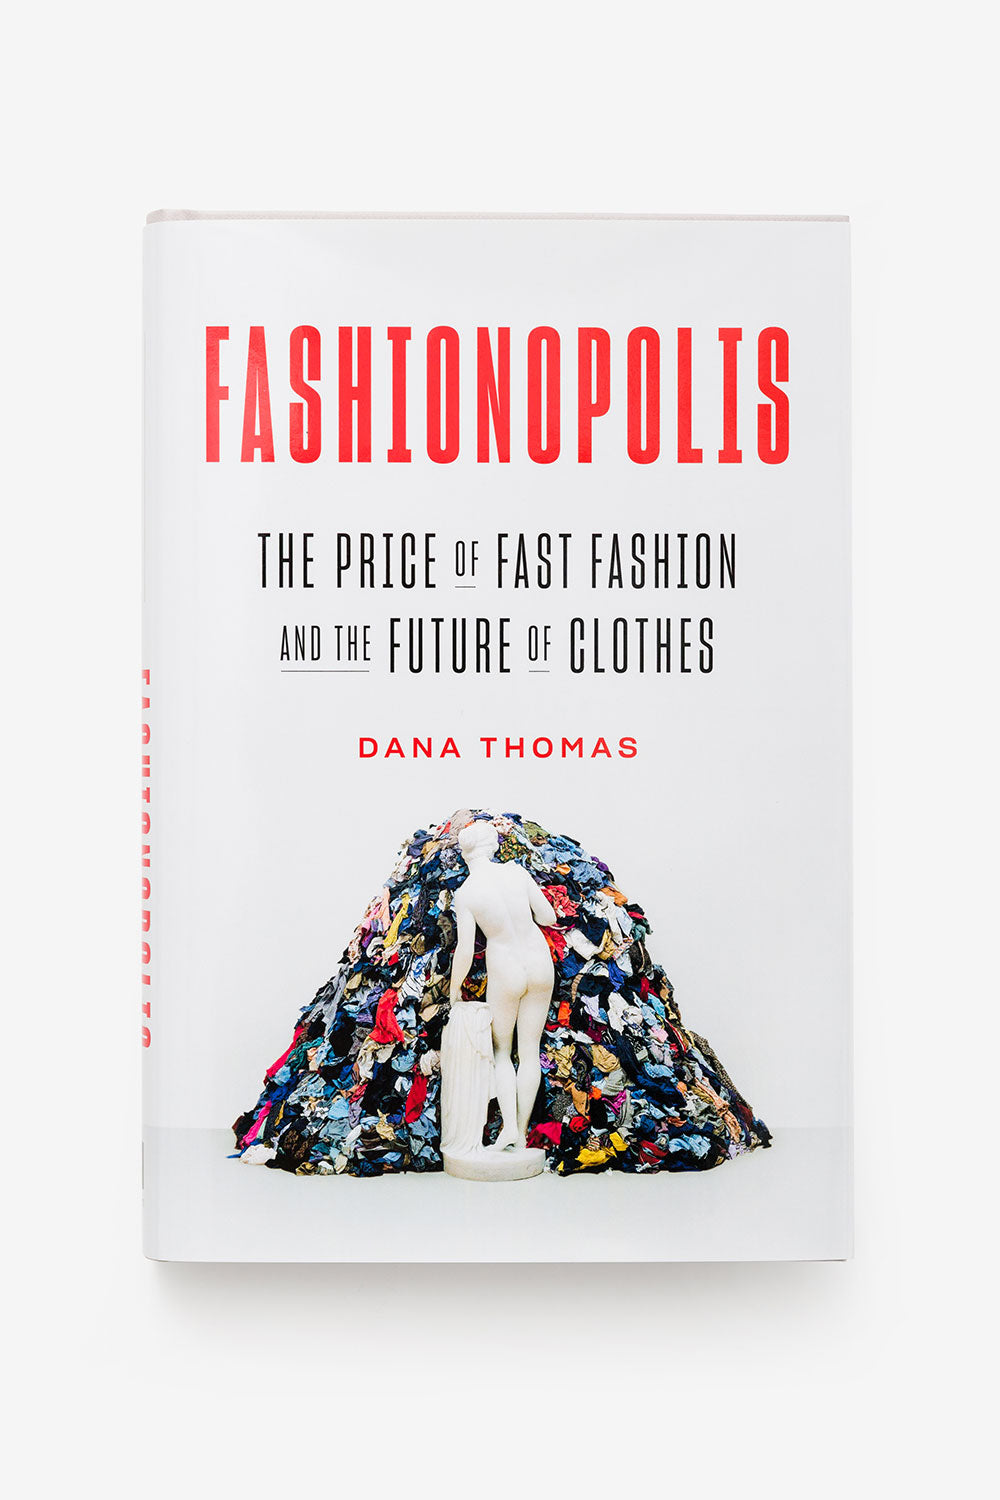 The School of Making Fashionopolis Book About the Price of Fast Fashion by Dana Thomas